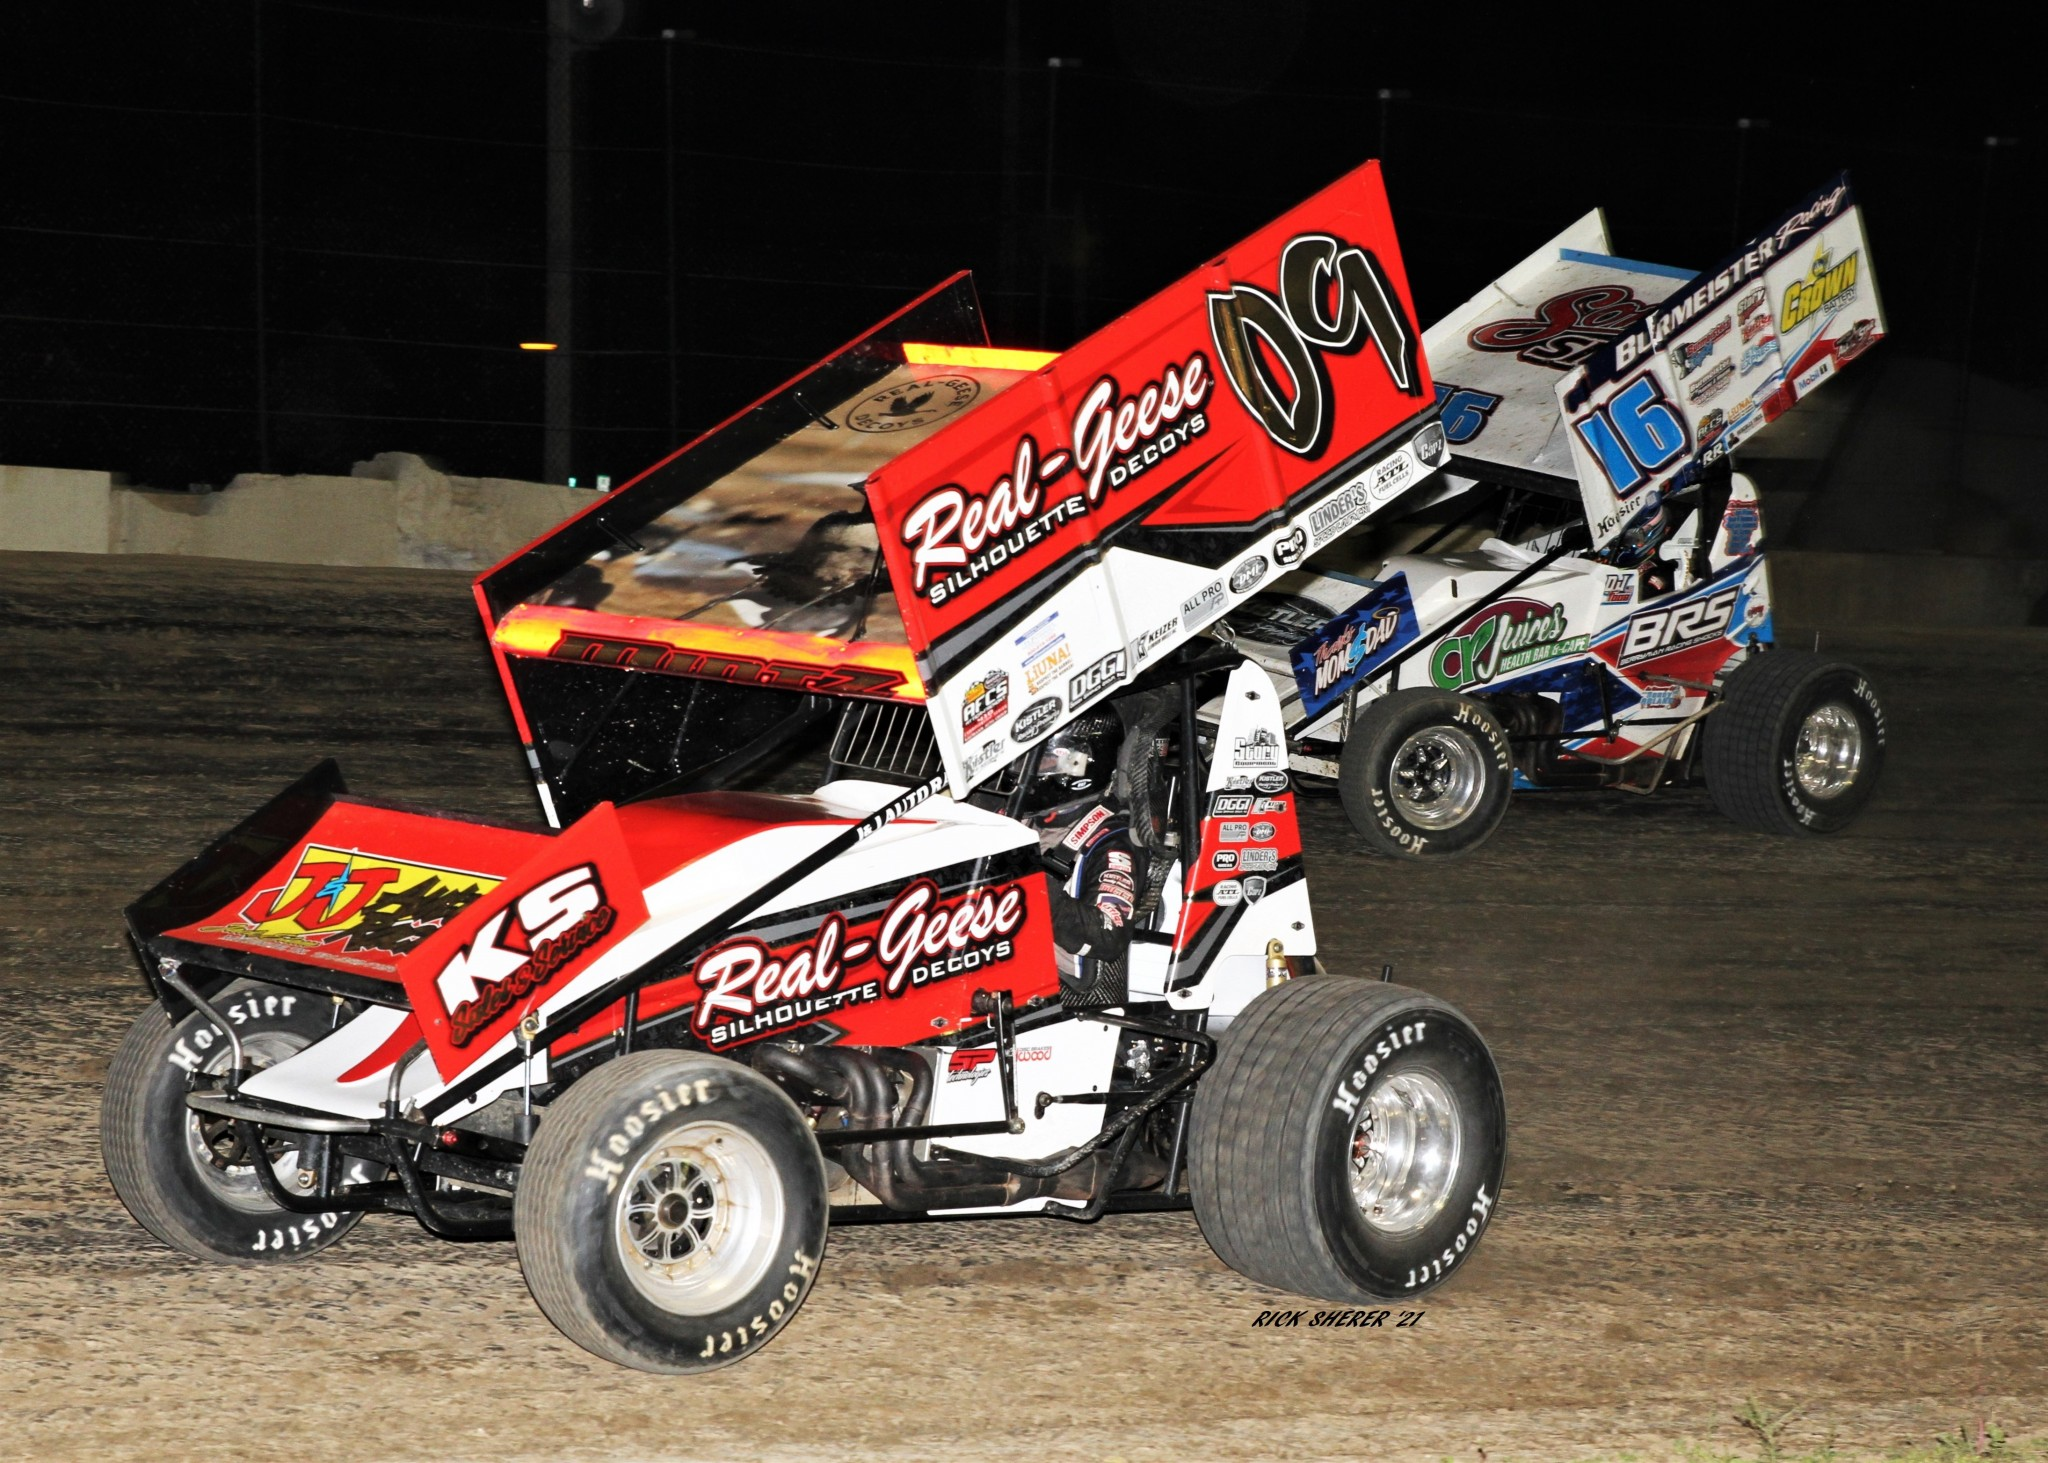 D.J. Foos (16) of Fremont would eventually overtake Craig Mintz (09) of Gibsonburg and win night one of the Attica / Fremont Championship Series at Fremont Speedway. Mintz finished 5th. (Photo by Rick Sherer)